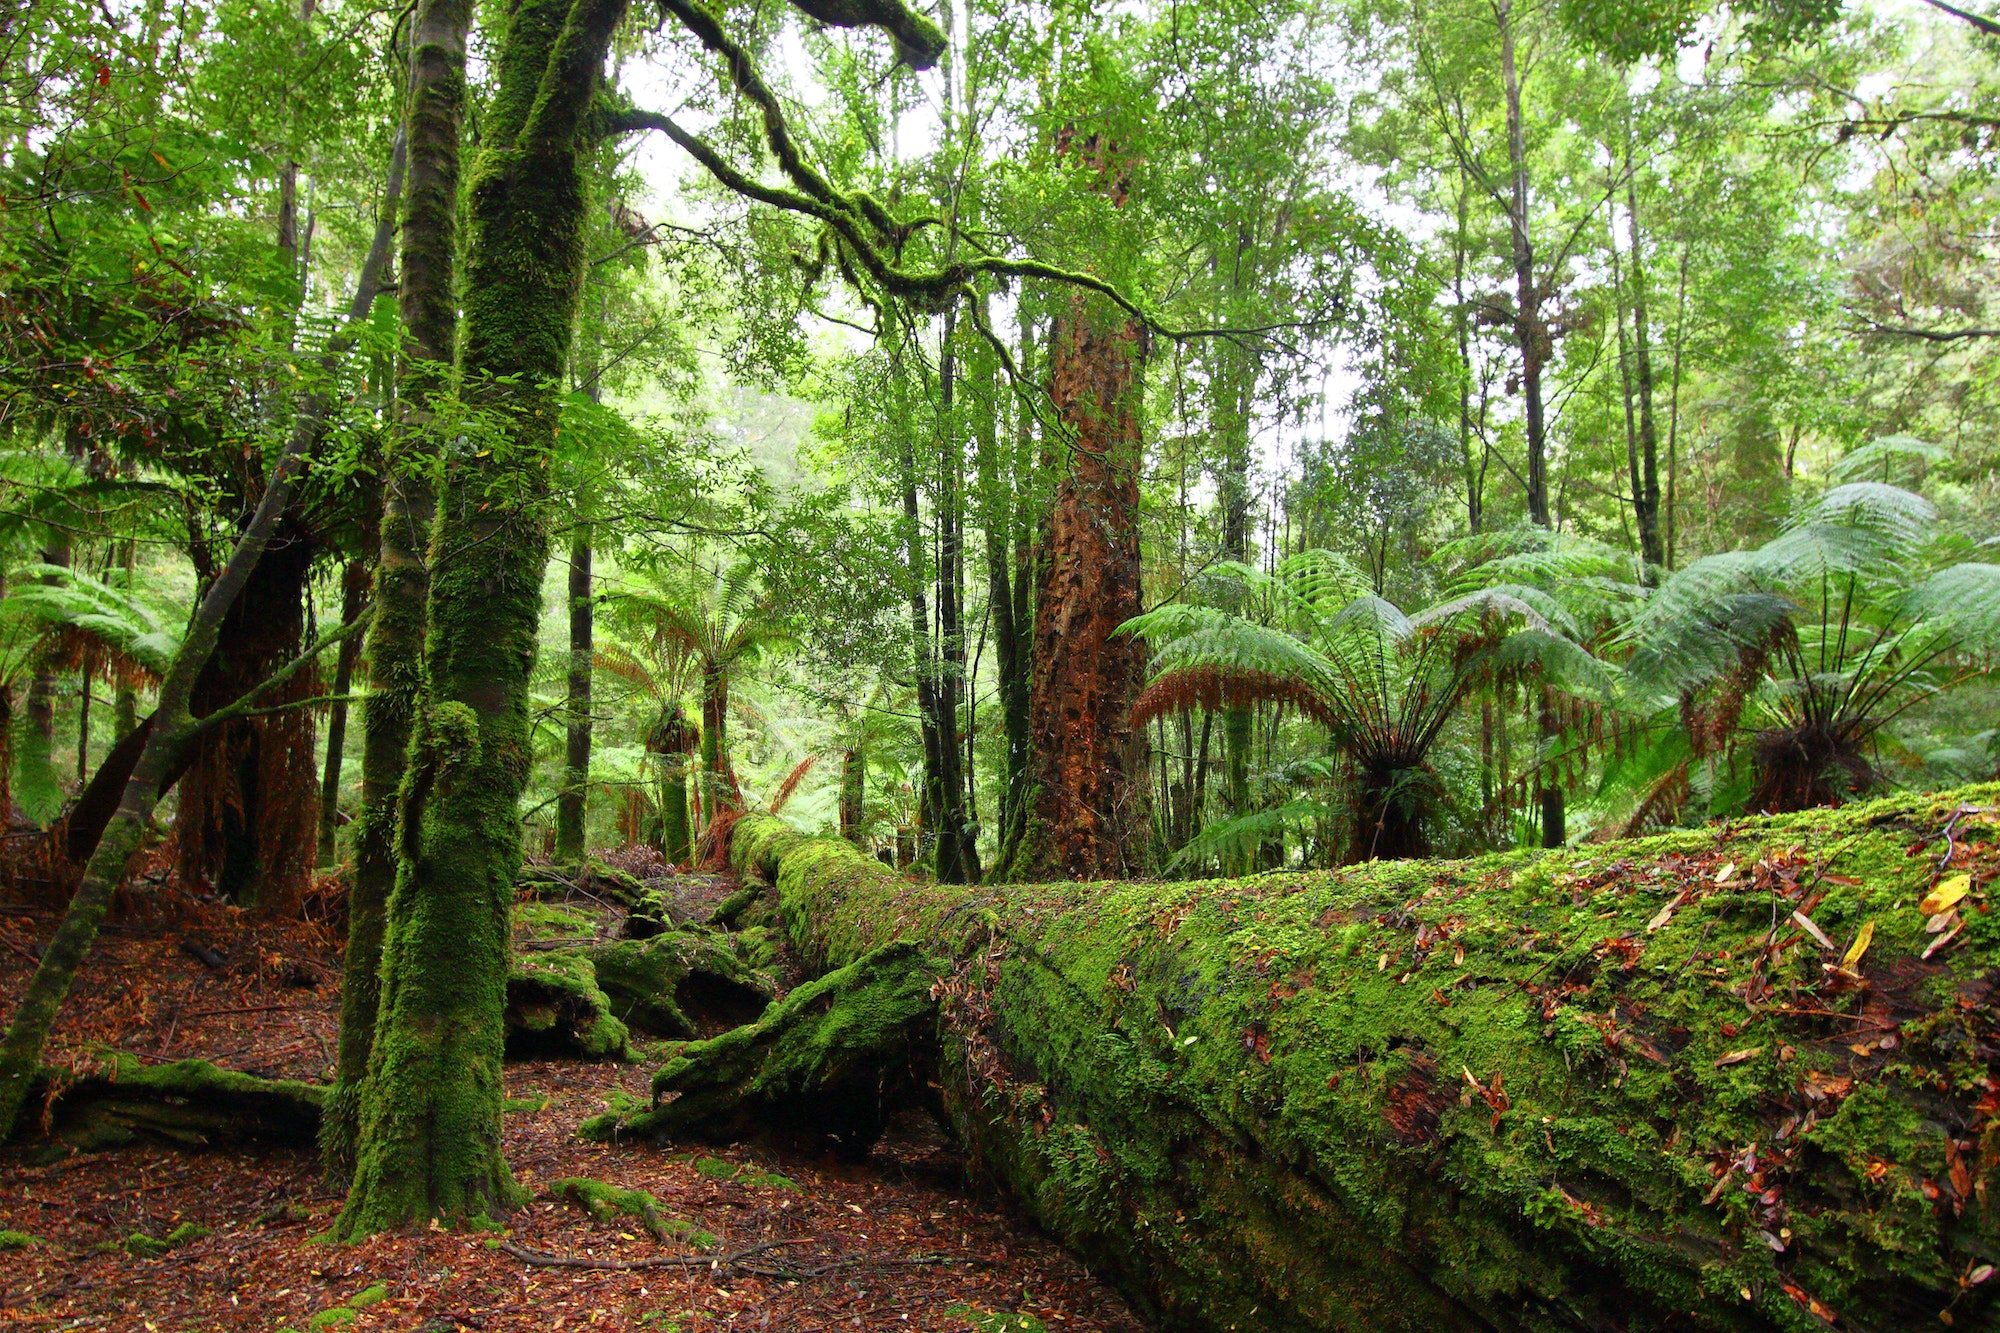 The Tarkine temperate rain forest in Tasmania, Australia